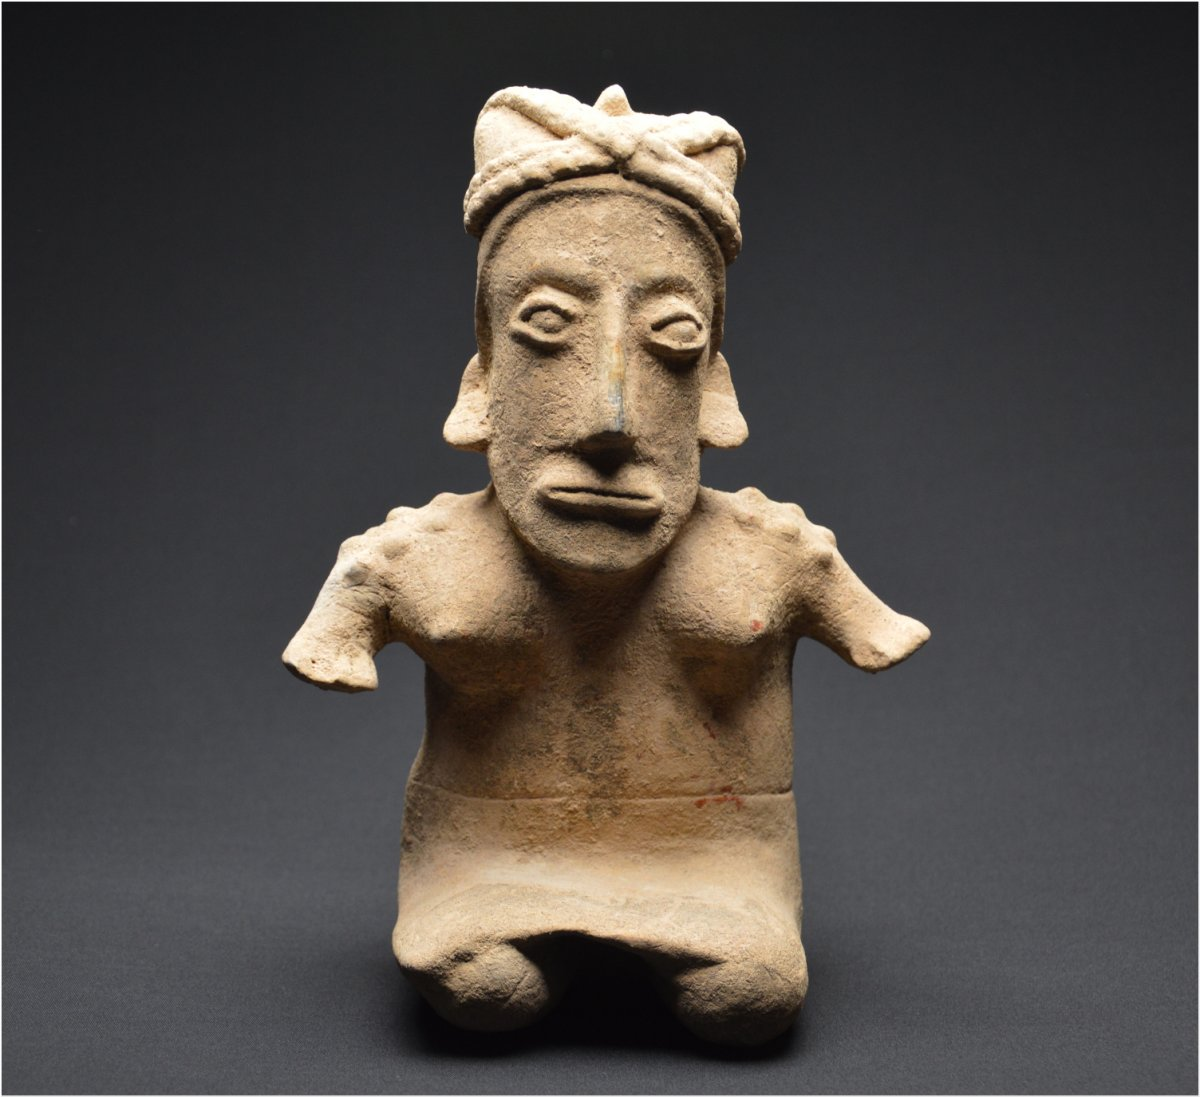 Western Mexico, Jalisco Culture, 300 Bc - 300 Ad, Important Anthropomorphic Statuette